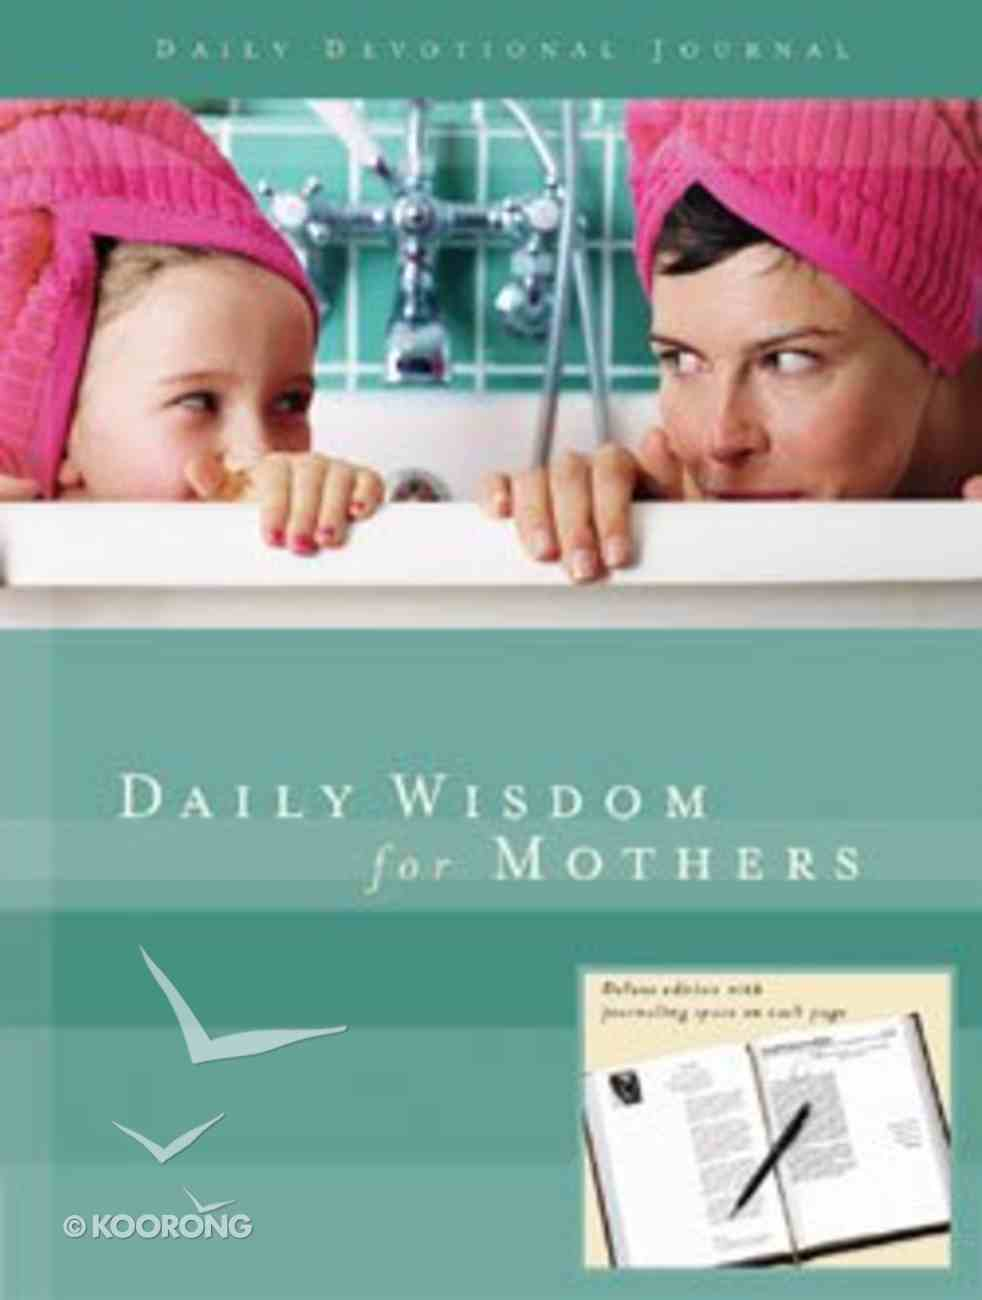 Daily Wisdom For Mothers (Daily Devotional Journal) Hardback